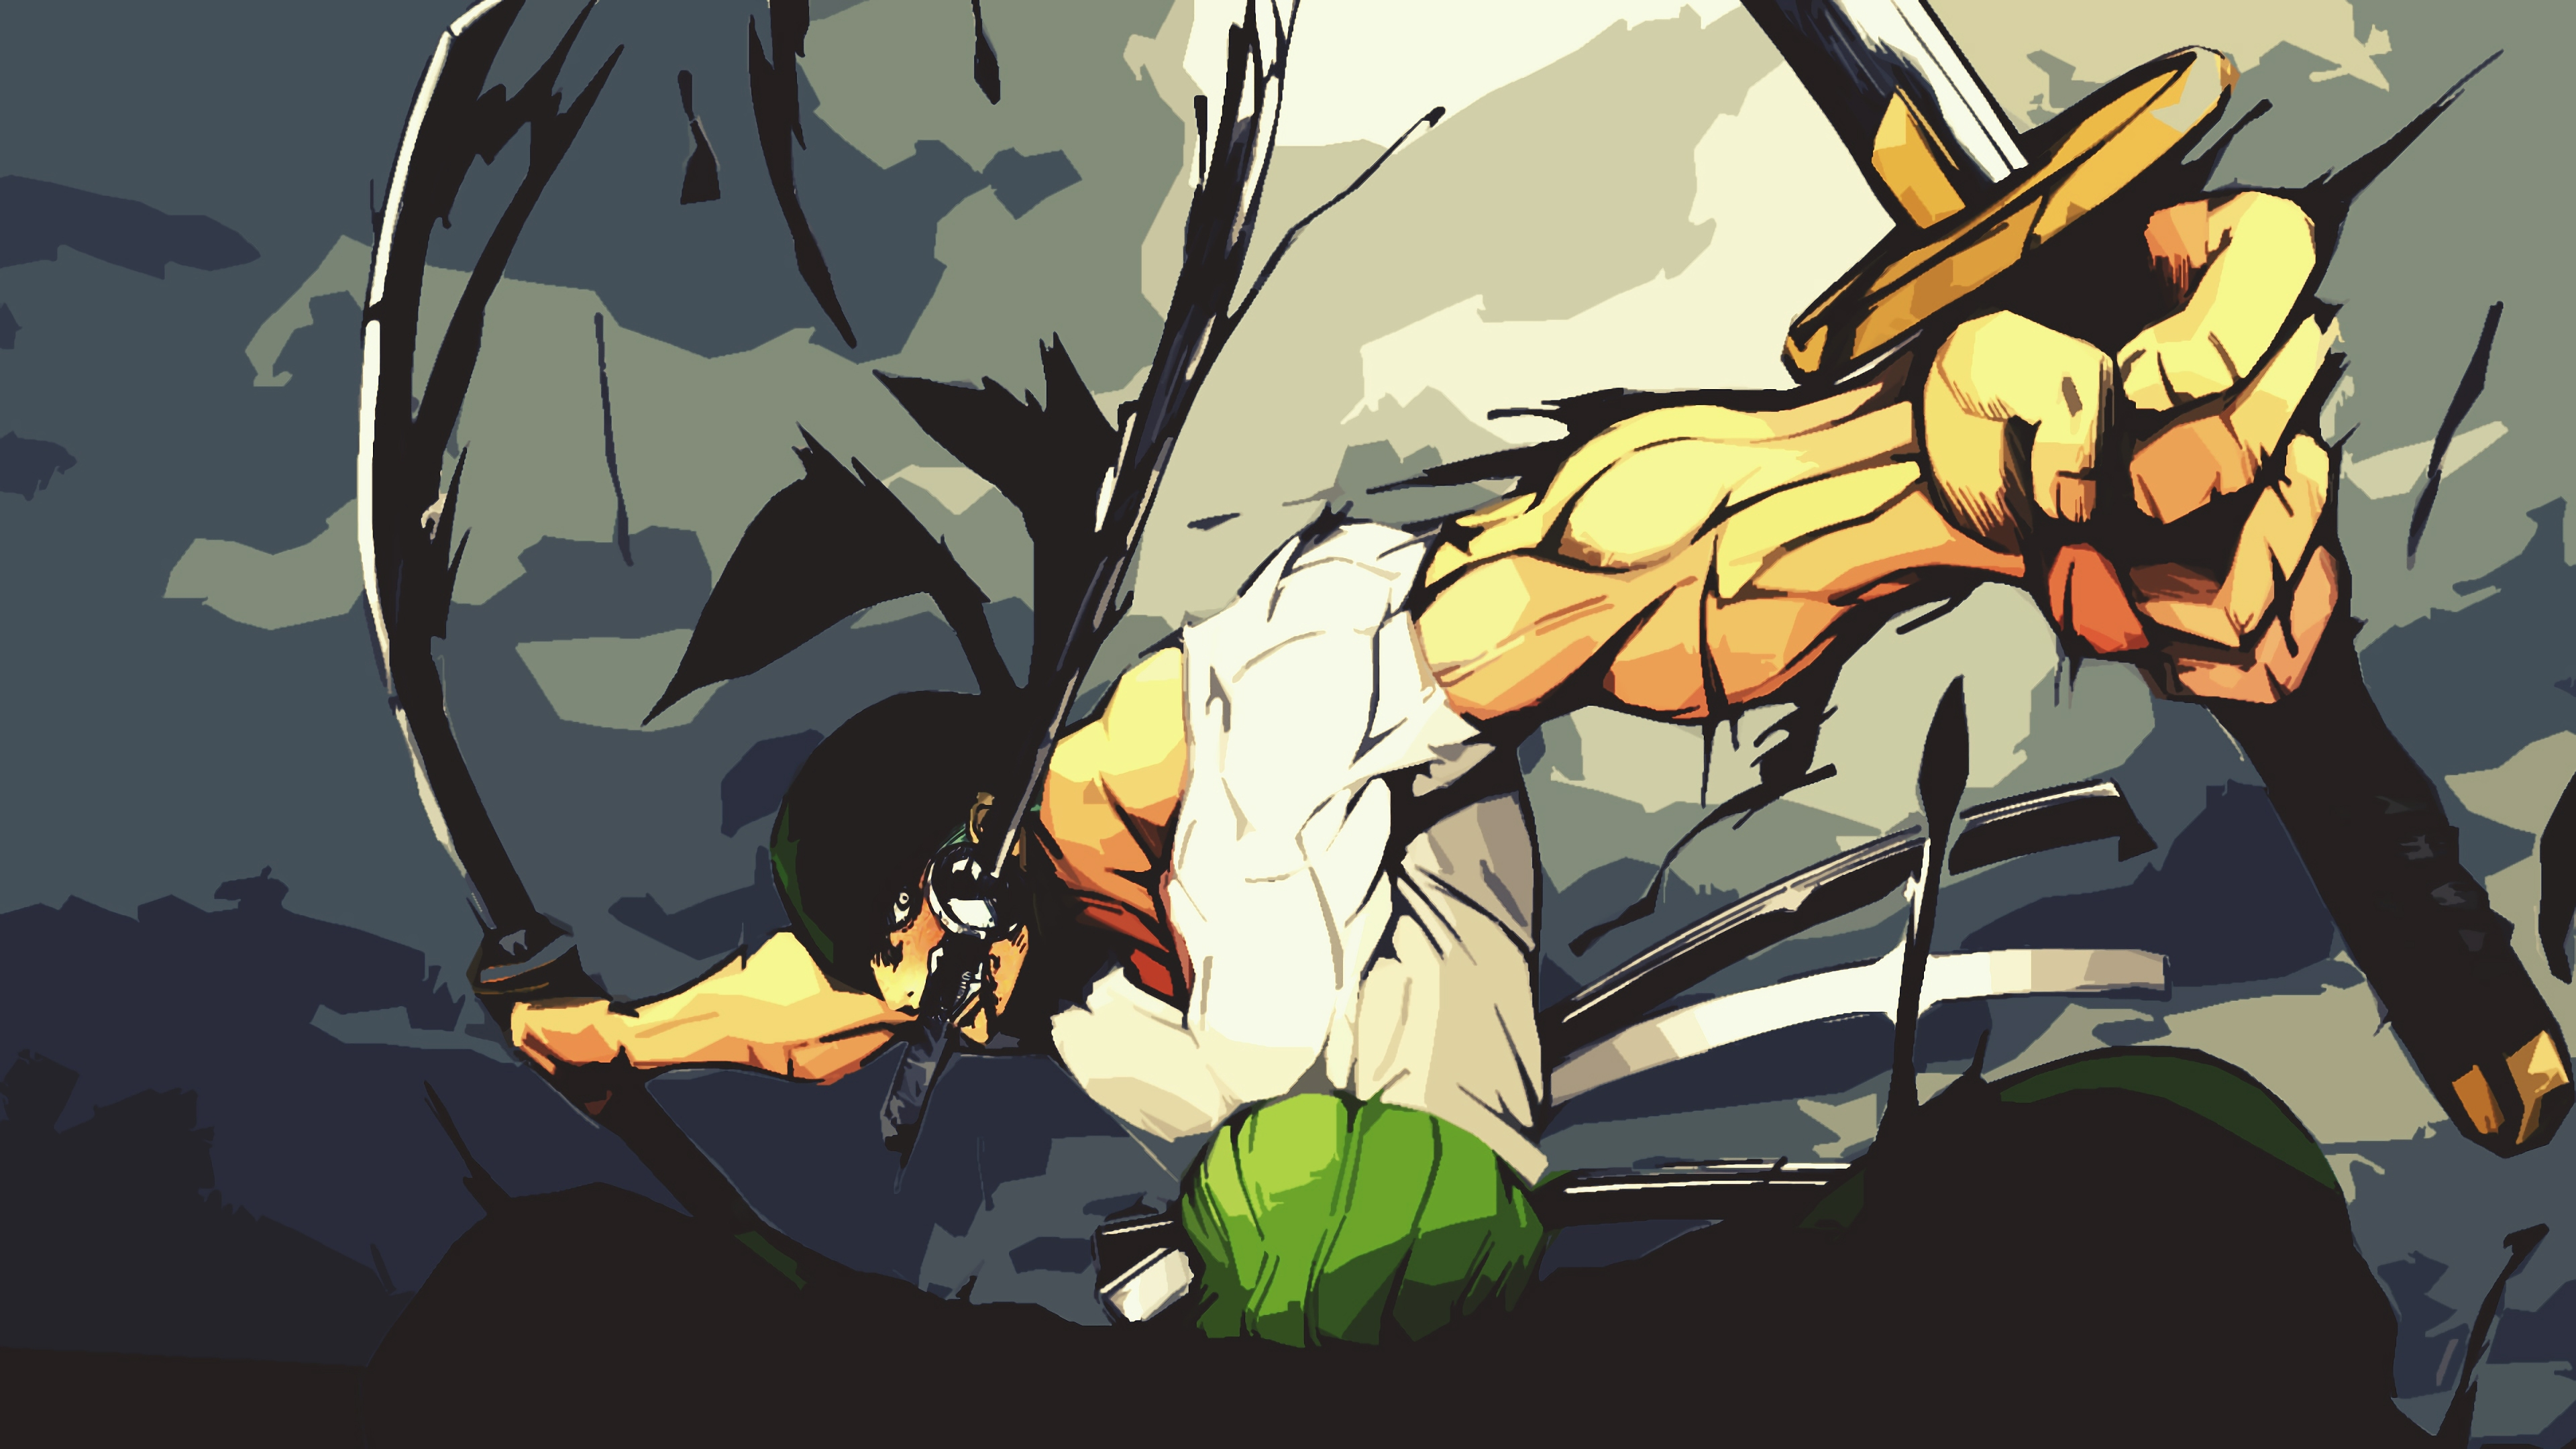 Zoro One Piece Wallpaper Pc 3840x2160 Download Hd Wallpaper Wallpapertip